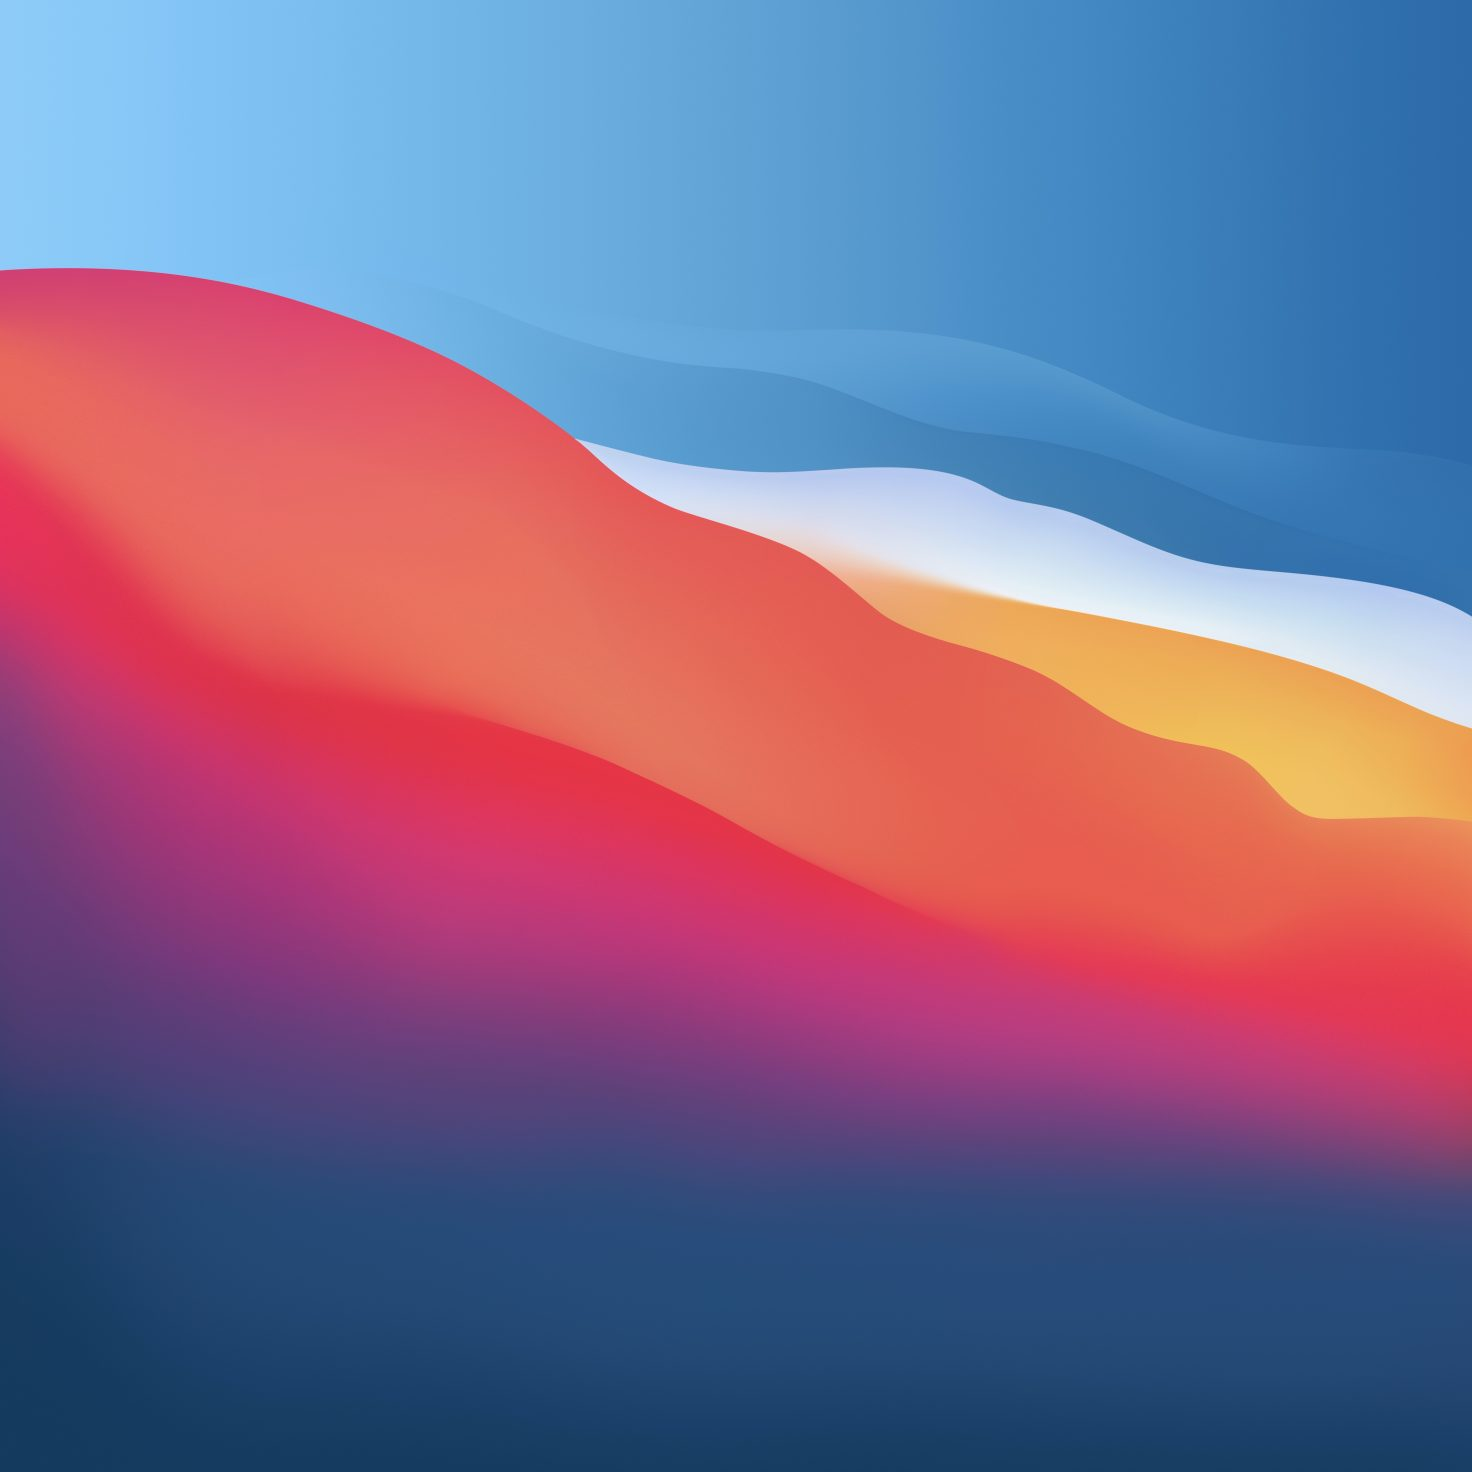 Apple Macos Big Sur Wallpaper Download Ios 14 Wallpaper 4k